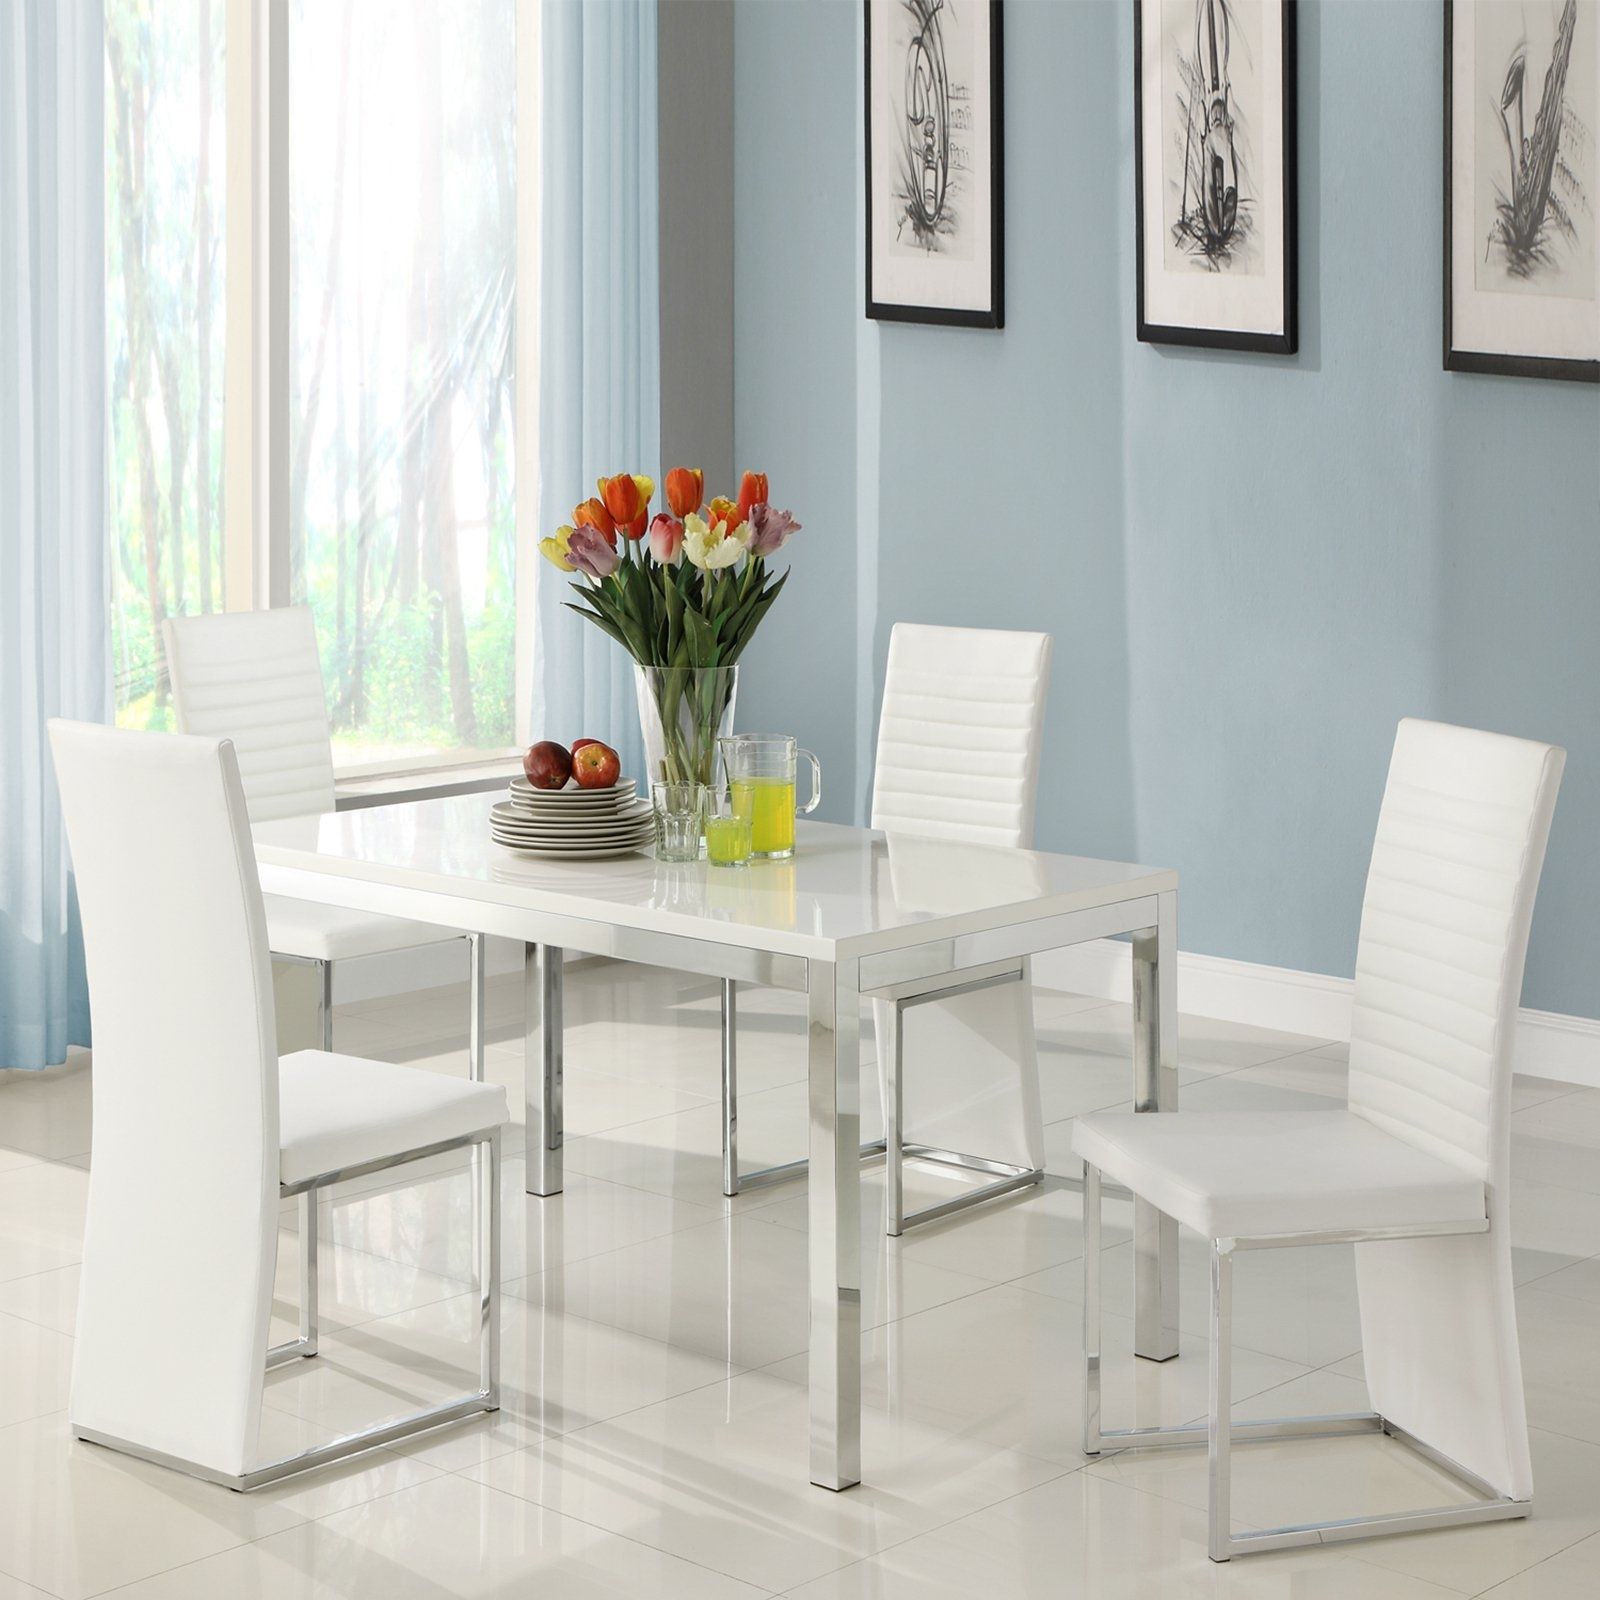 Homelegance Clarice 5 Piece Chrome Dining Table Set – Modern White For Well Liked Chrome Dining Tables (View 14 of 25)